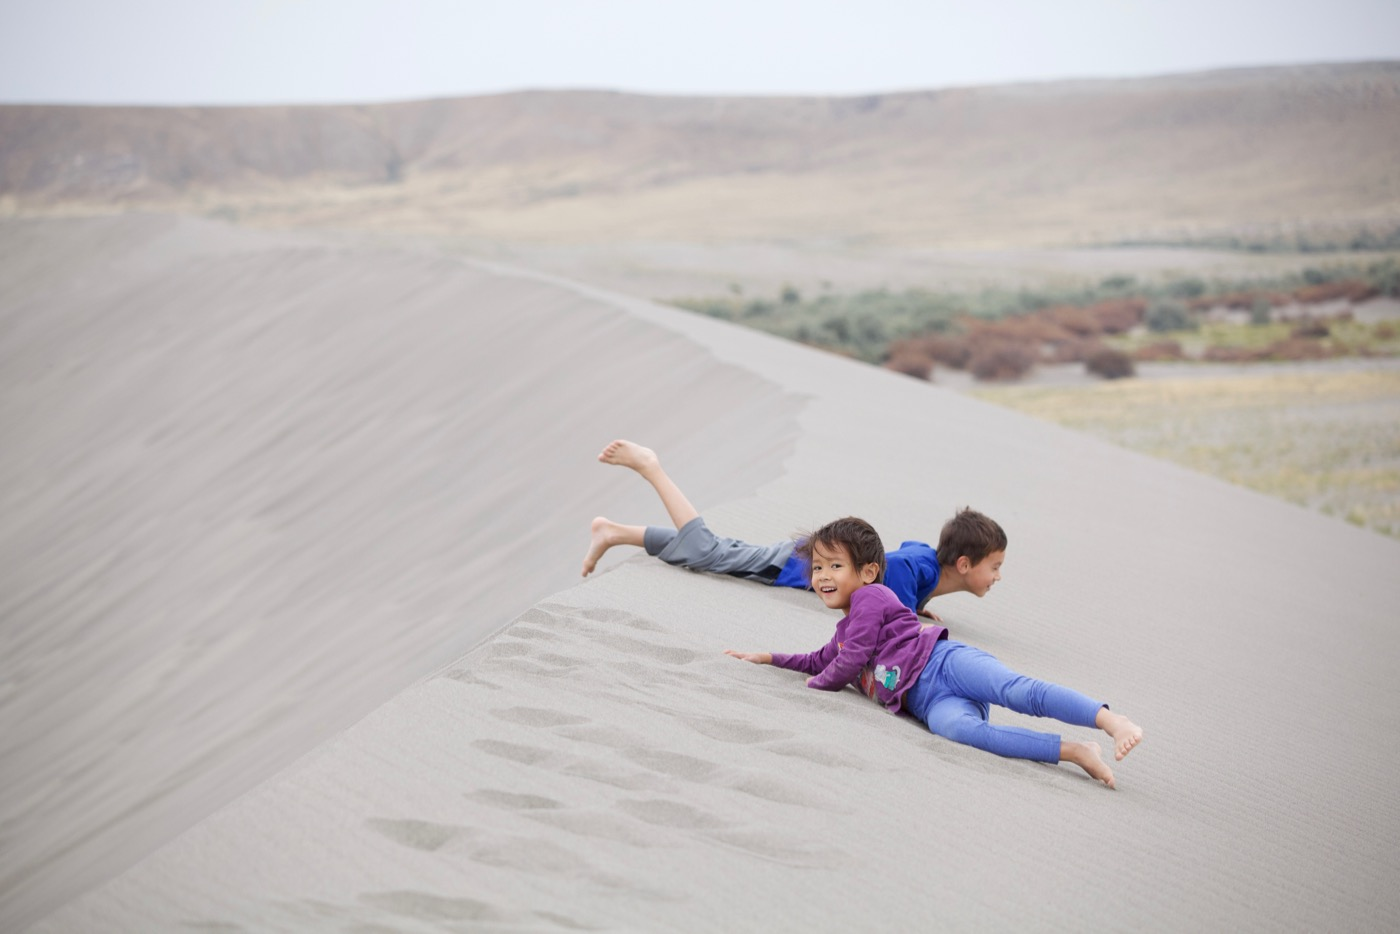 Heidi and Kai playing, Bruneau Sand Dunes